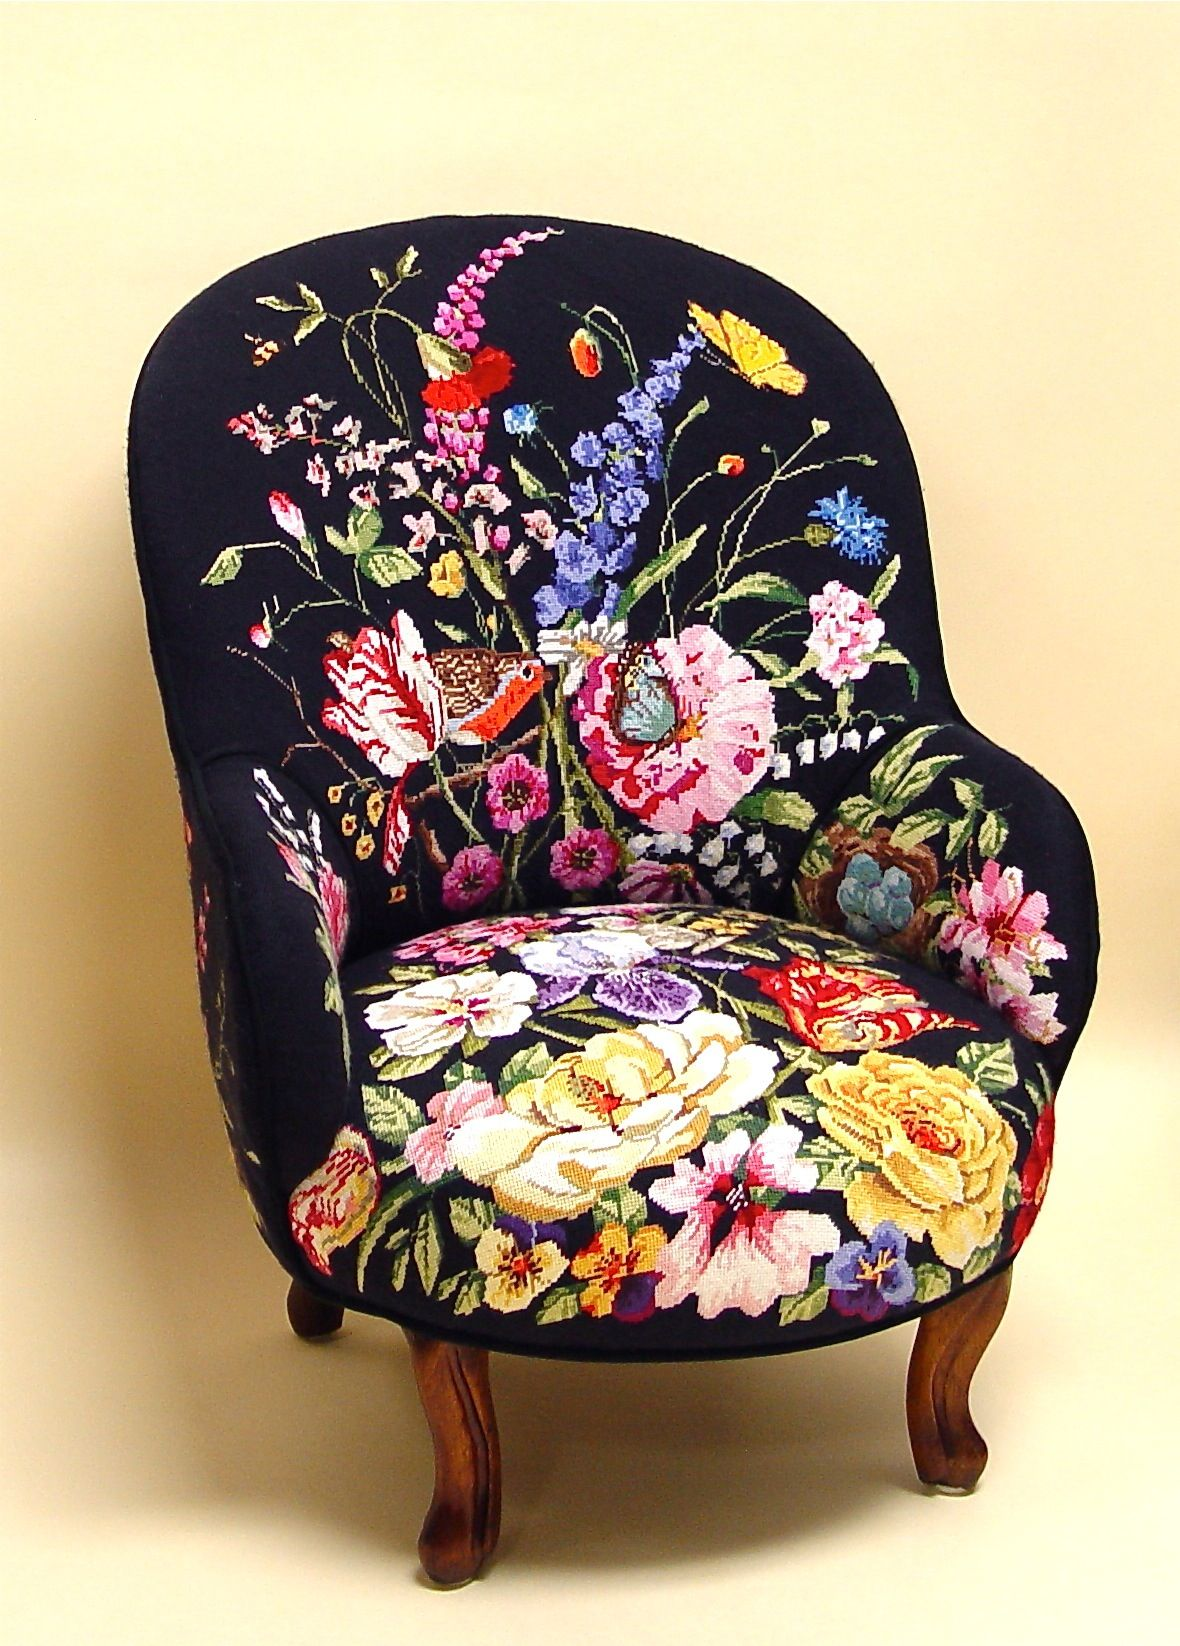 Floral Chairs Needlepoint Armchair In Sane So Gorgeous For The Home